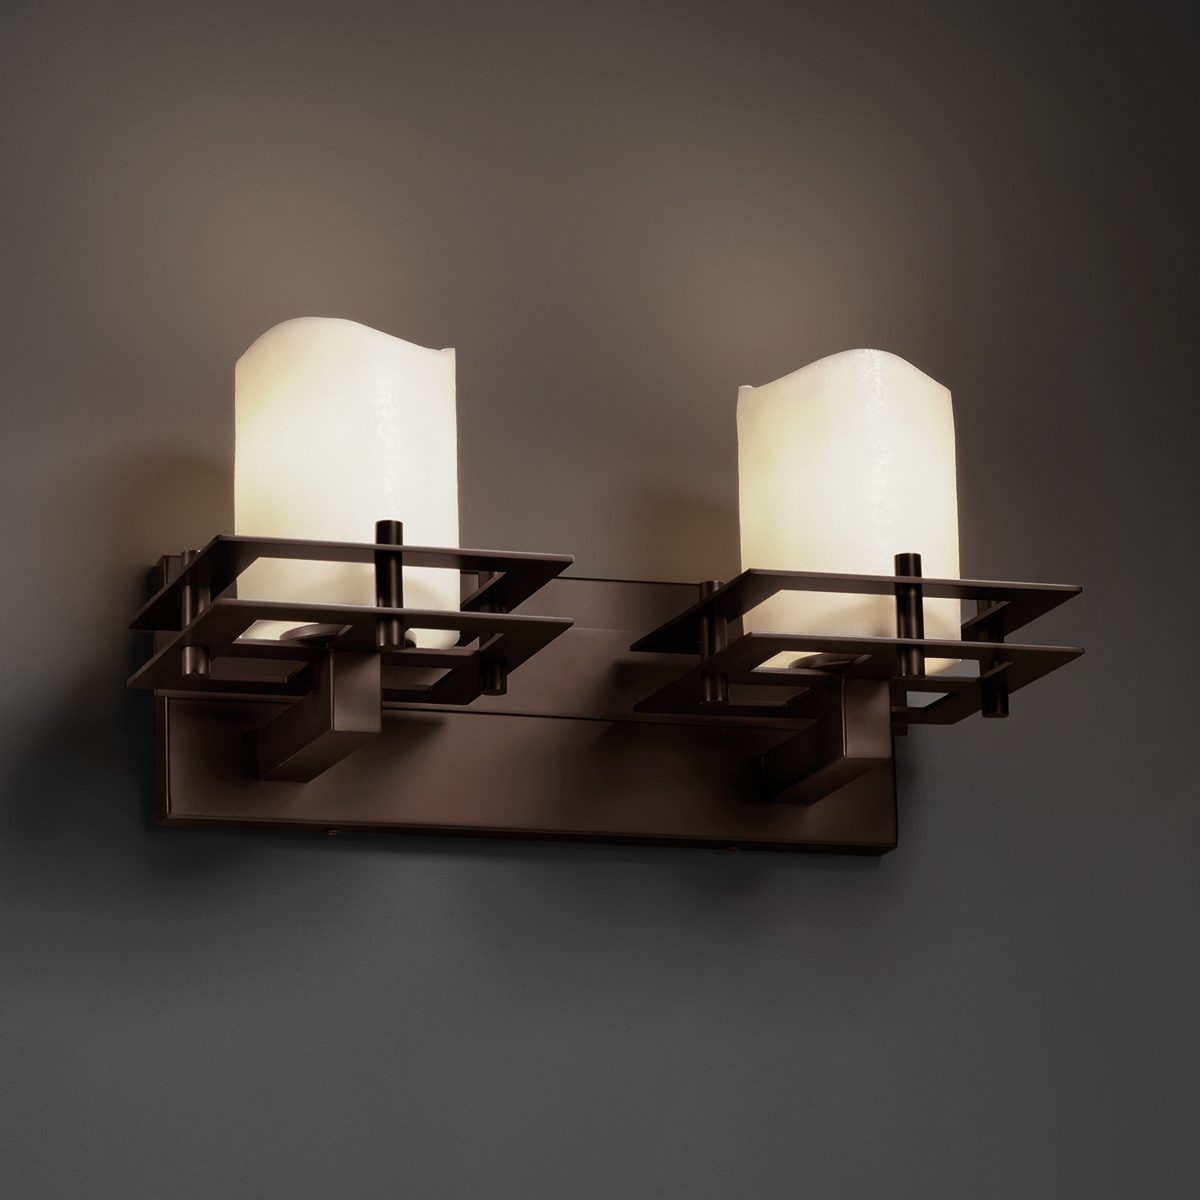 Justice design cndl 8172 metropolis 2 light bath bar from the candlearia collection - Justice design bathroom lighting ...